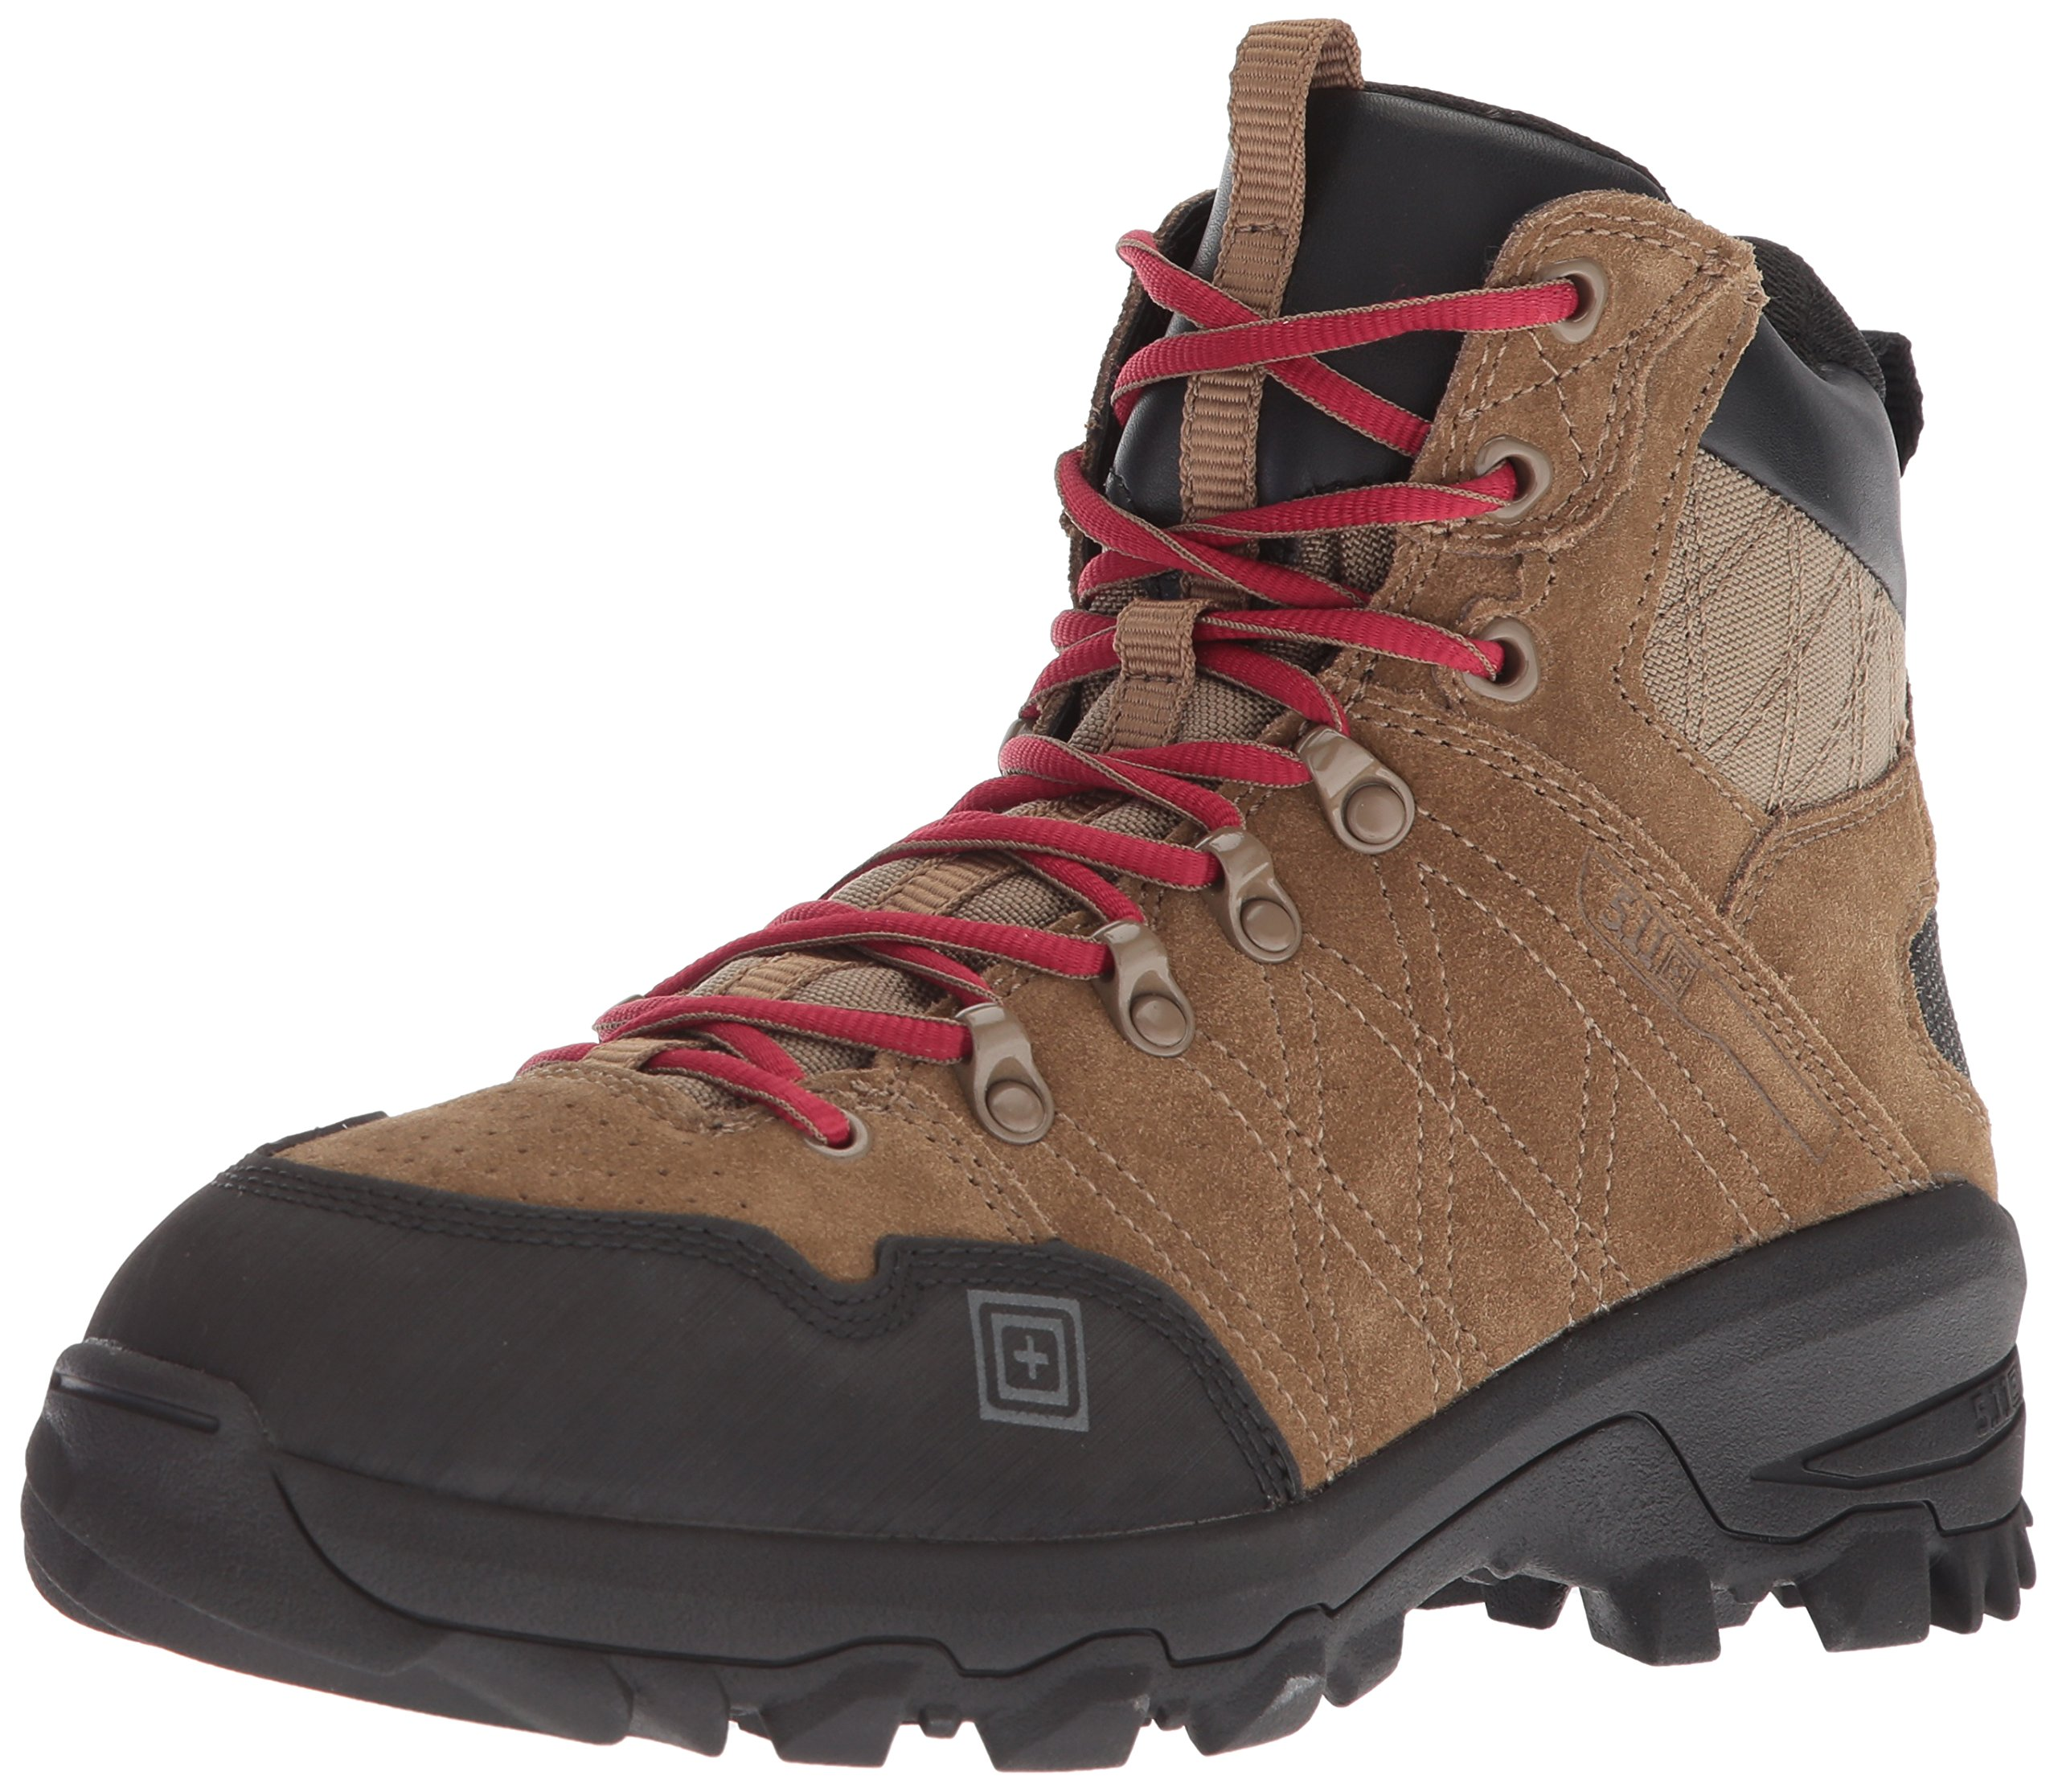 5.11 Cable Hiker Mountaineering Boot, Dark Coyote, 14 Wide by 5.11